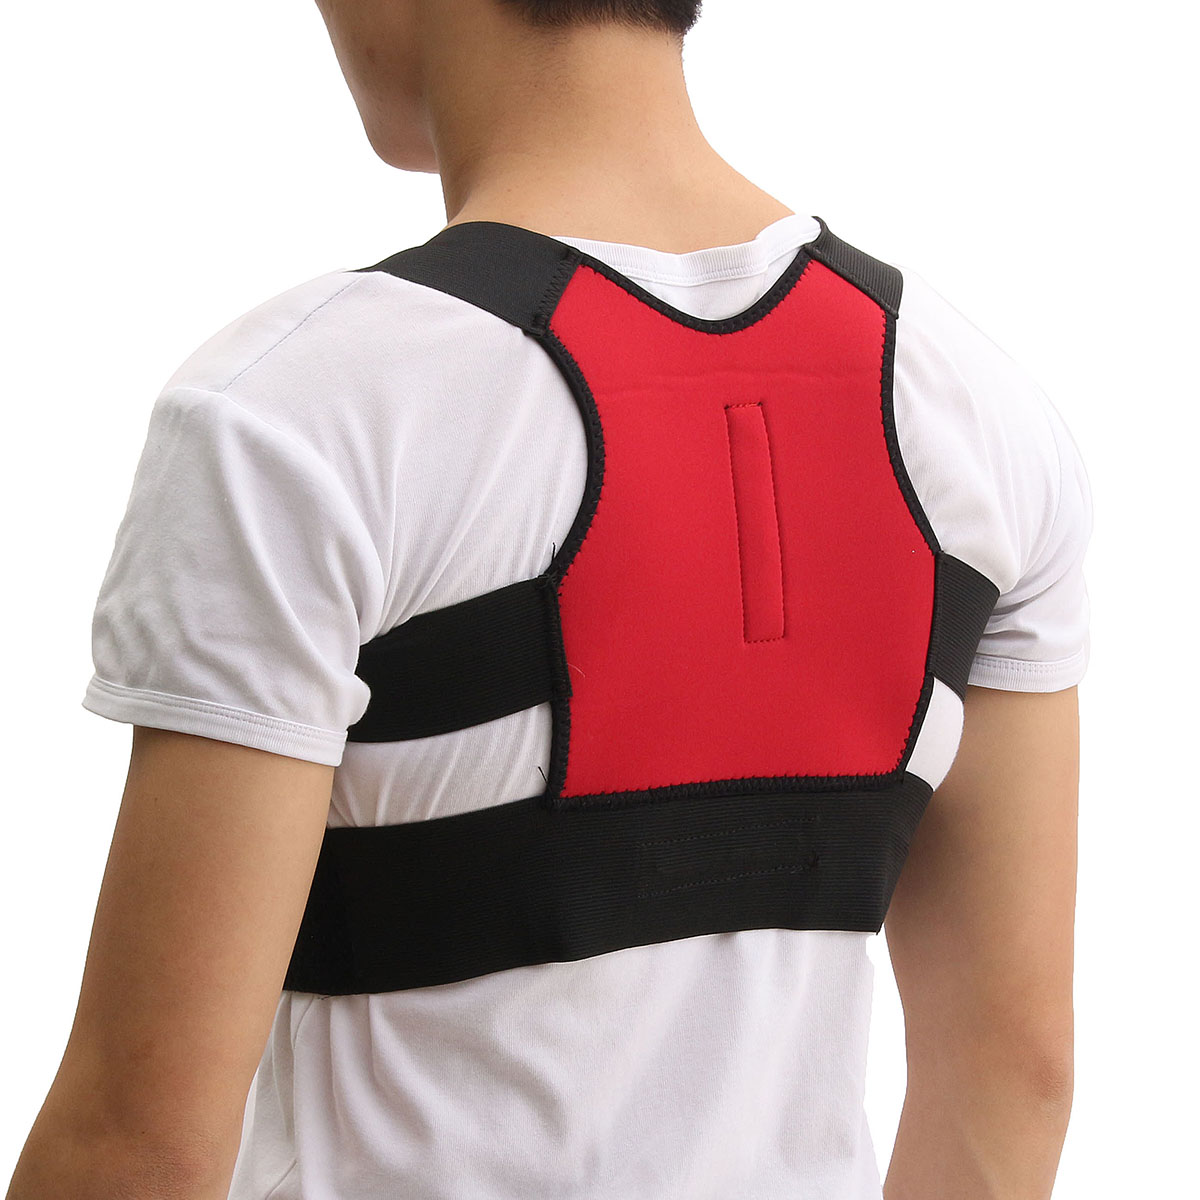 Unisex Back Support Posture Corrector Lumbar Correction Shoulder Brace Belt